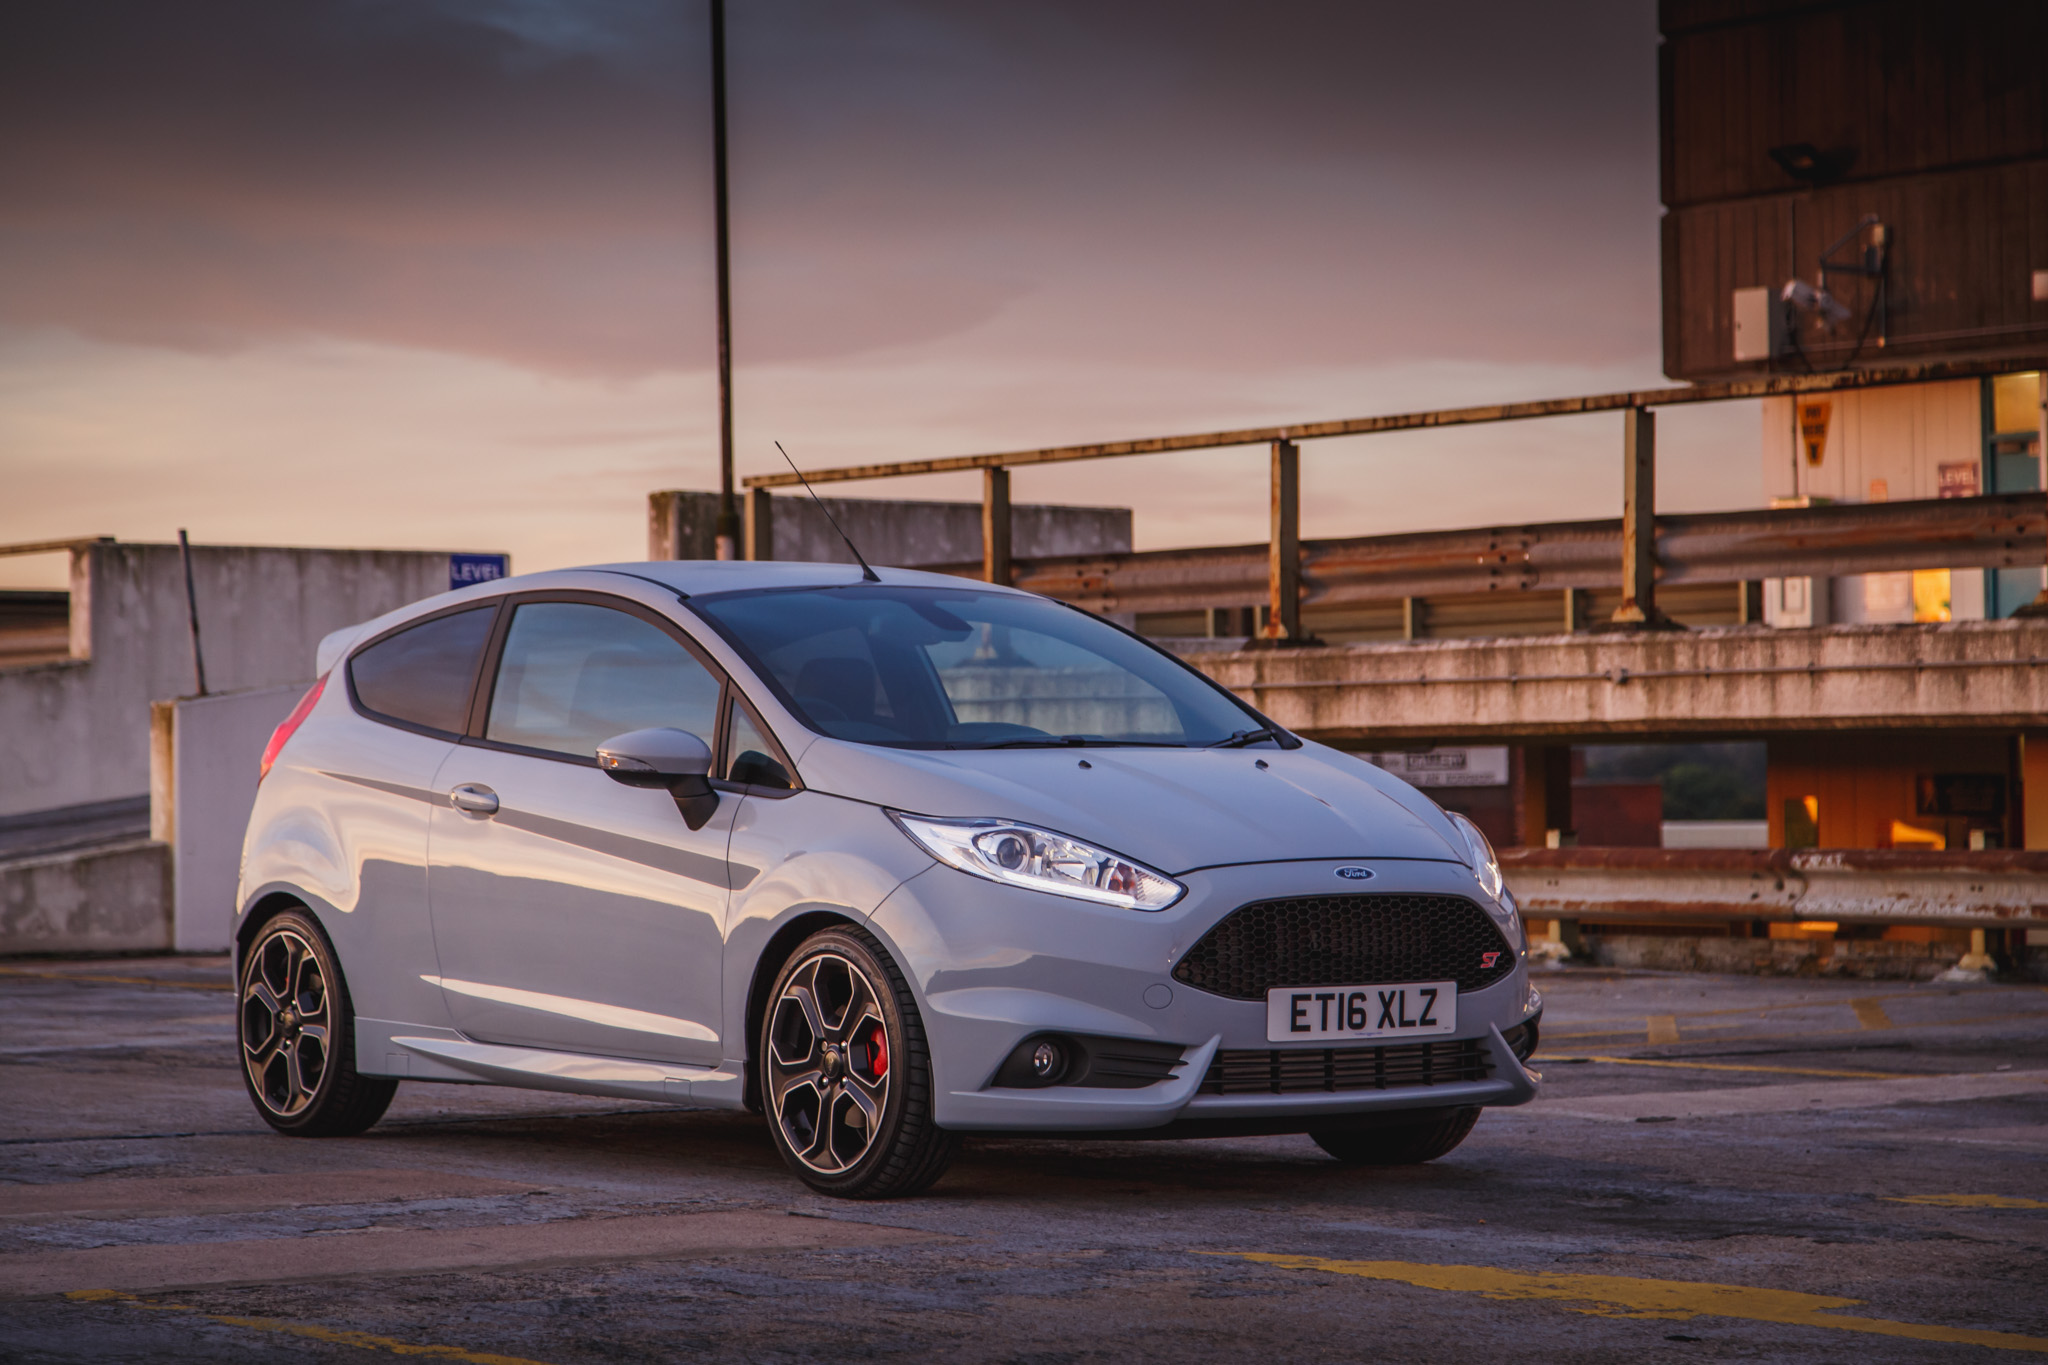 2016 ford fiesta st200 review. Black Bedroom Furniture Sets. Home Design Ideas